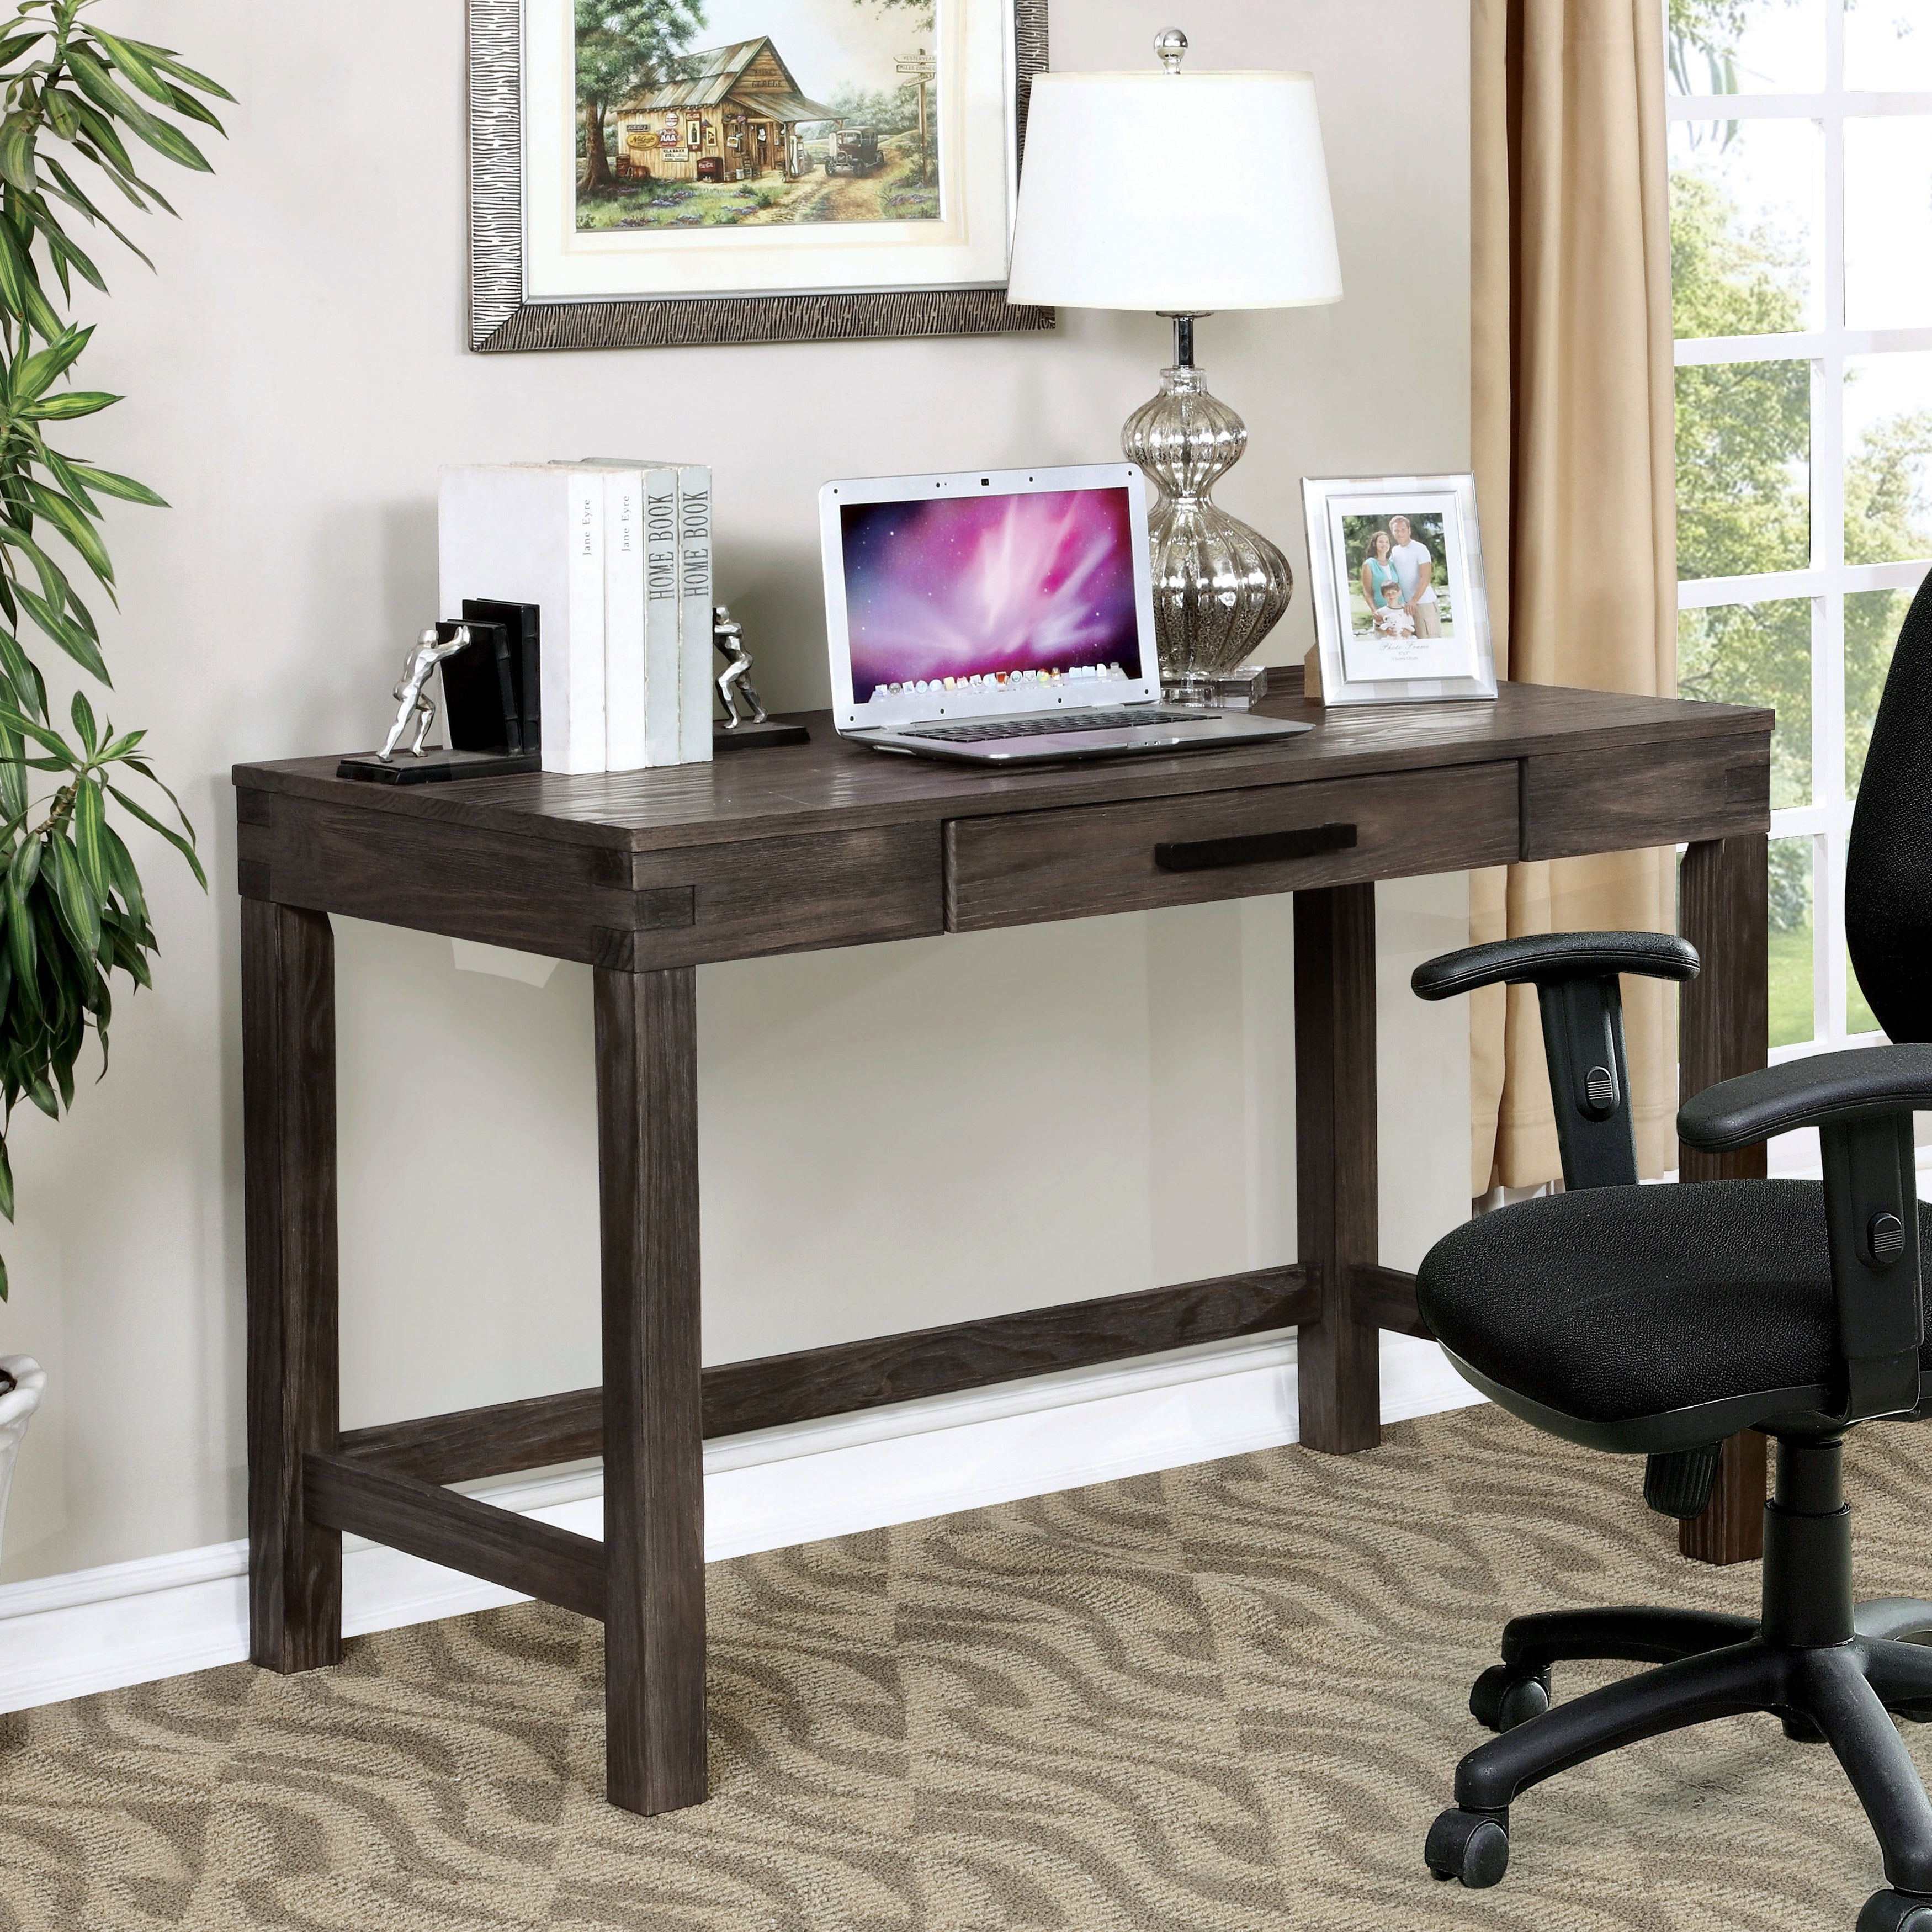 Shop Black Friday Deals On Furniture Of America Cel Rustic Grey 48 Inch Solid Wood Writing Desk Overstock 13768694